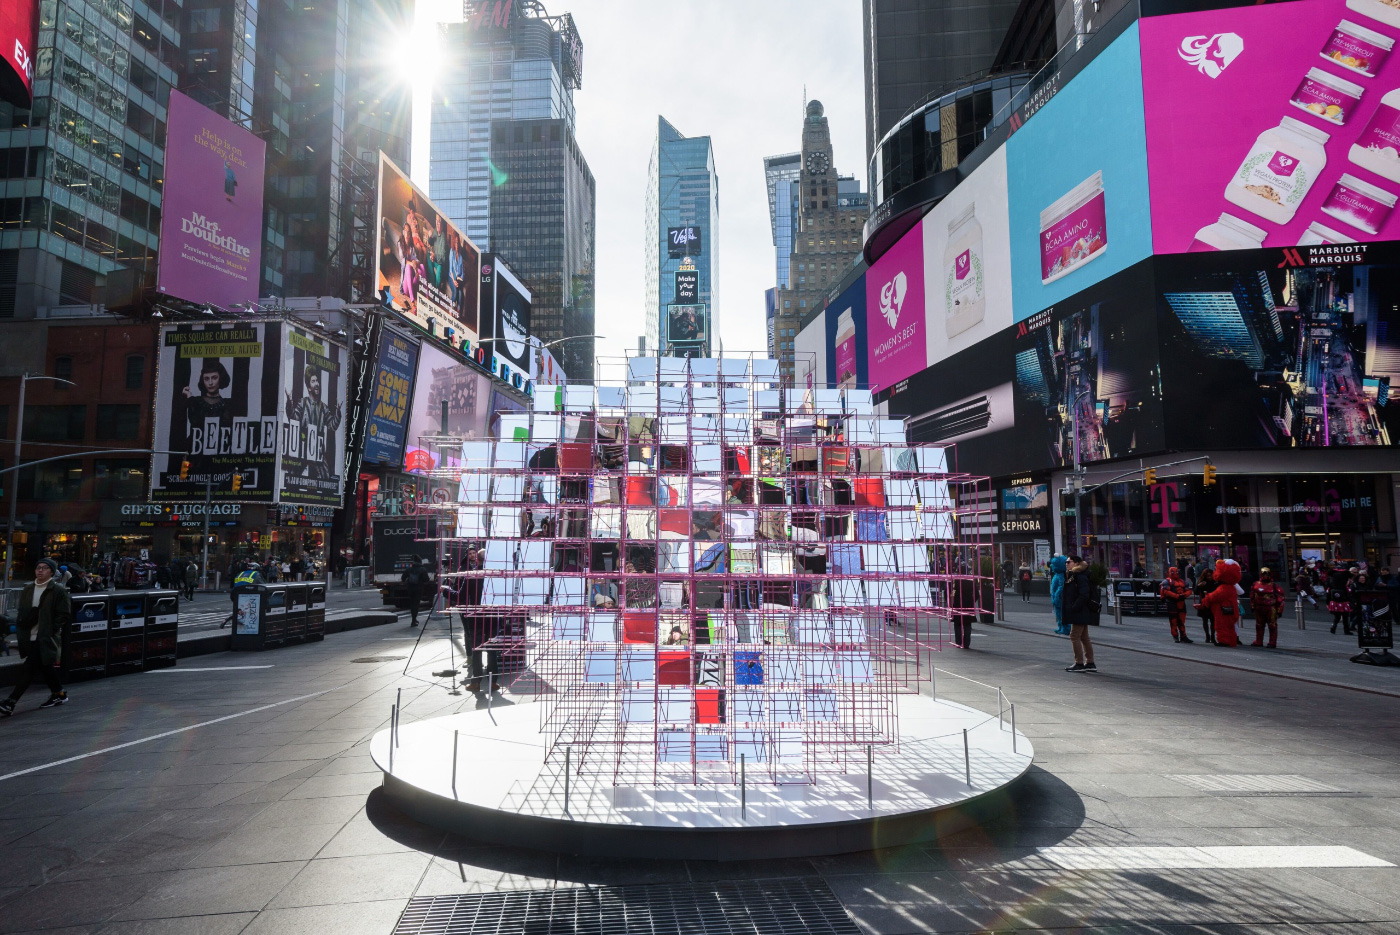 Mirrored Heart Sculpture in Times Square